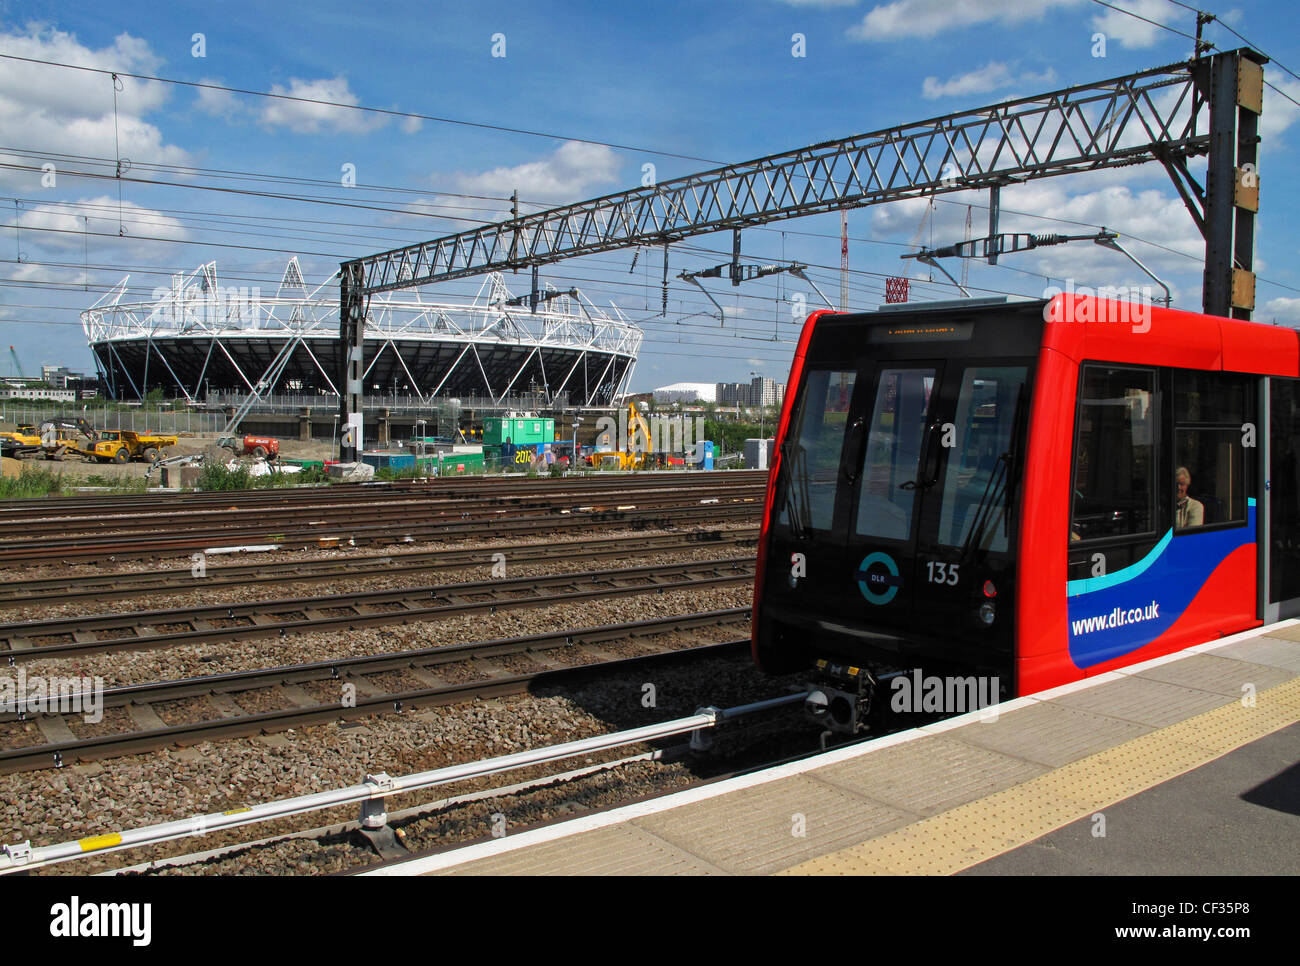 A Docklands Light Railway train alongside a platform with the Olympic Stadium in the background. - Stock Image